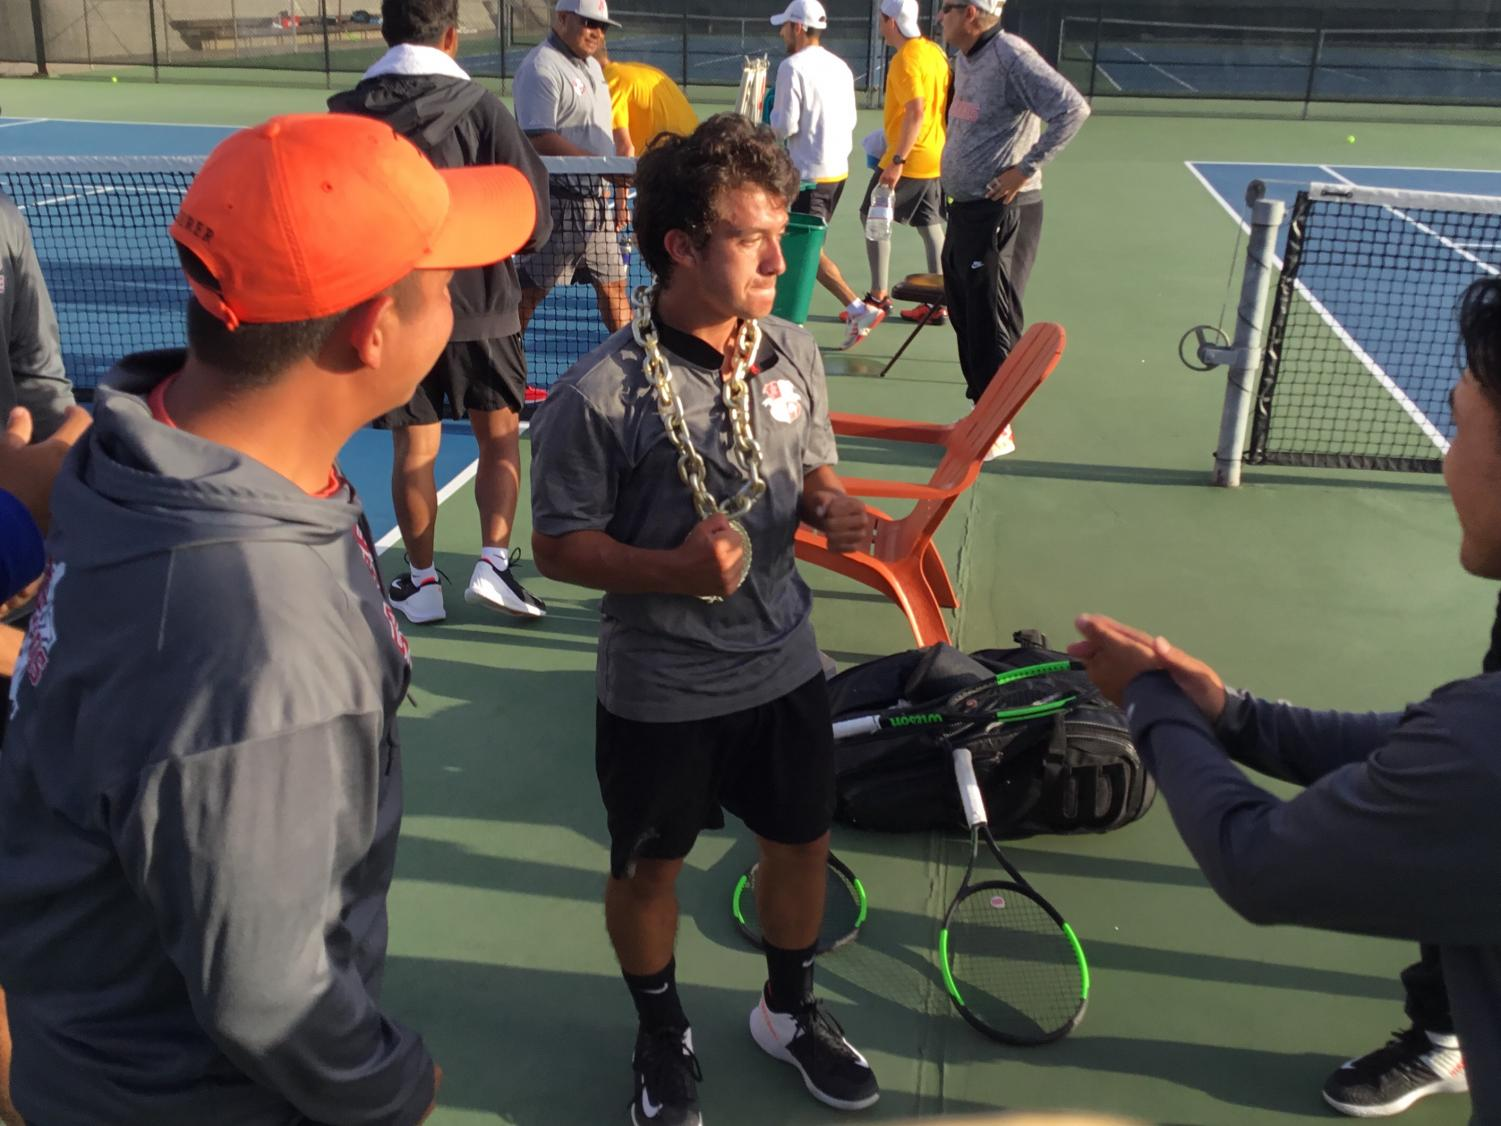 San Diego City College's Colin Palmer secured the winning match fot the Knight's first round playoff win. By Sonny Garibay/City Times